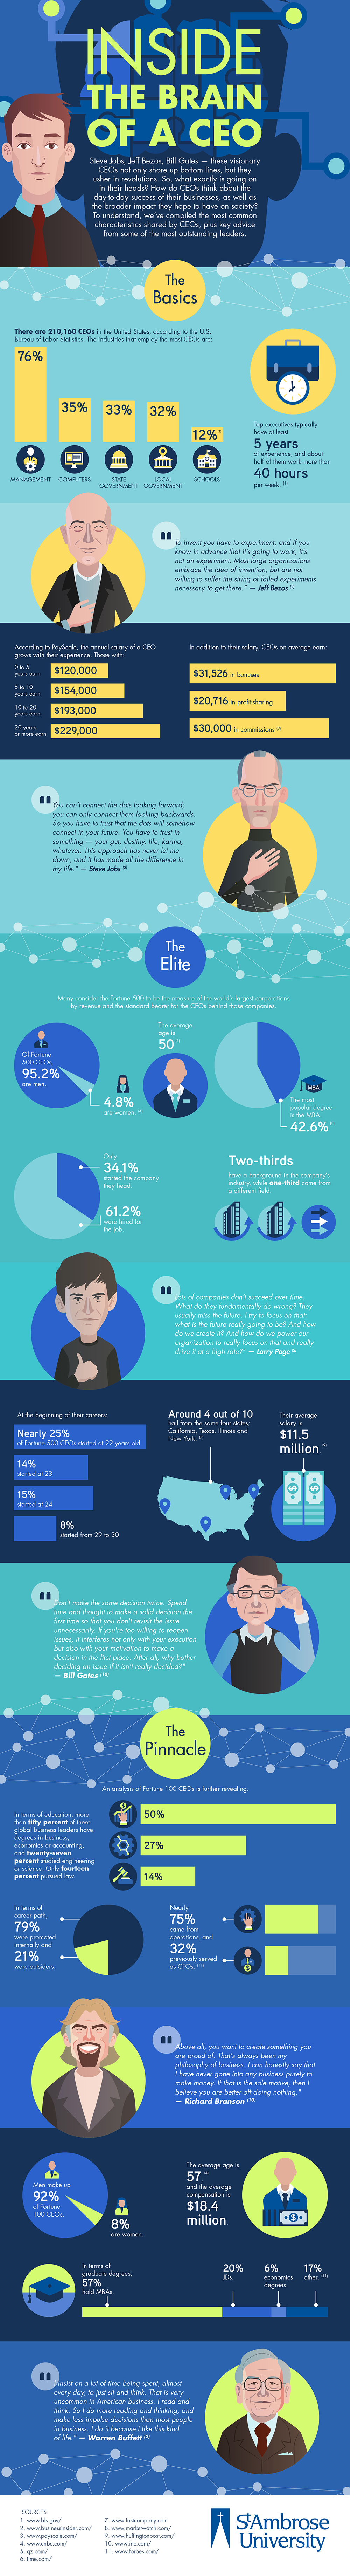 Inside the Brain of a CEO - infographic